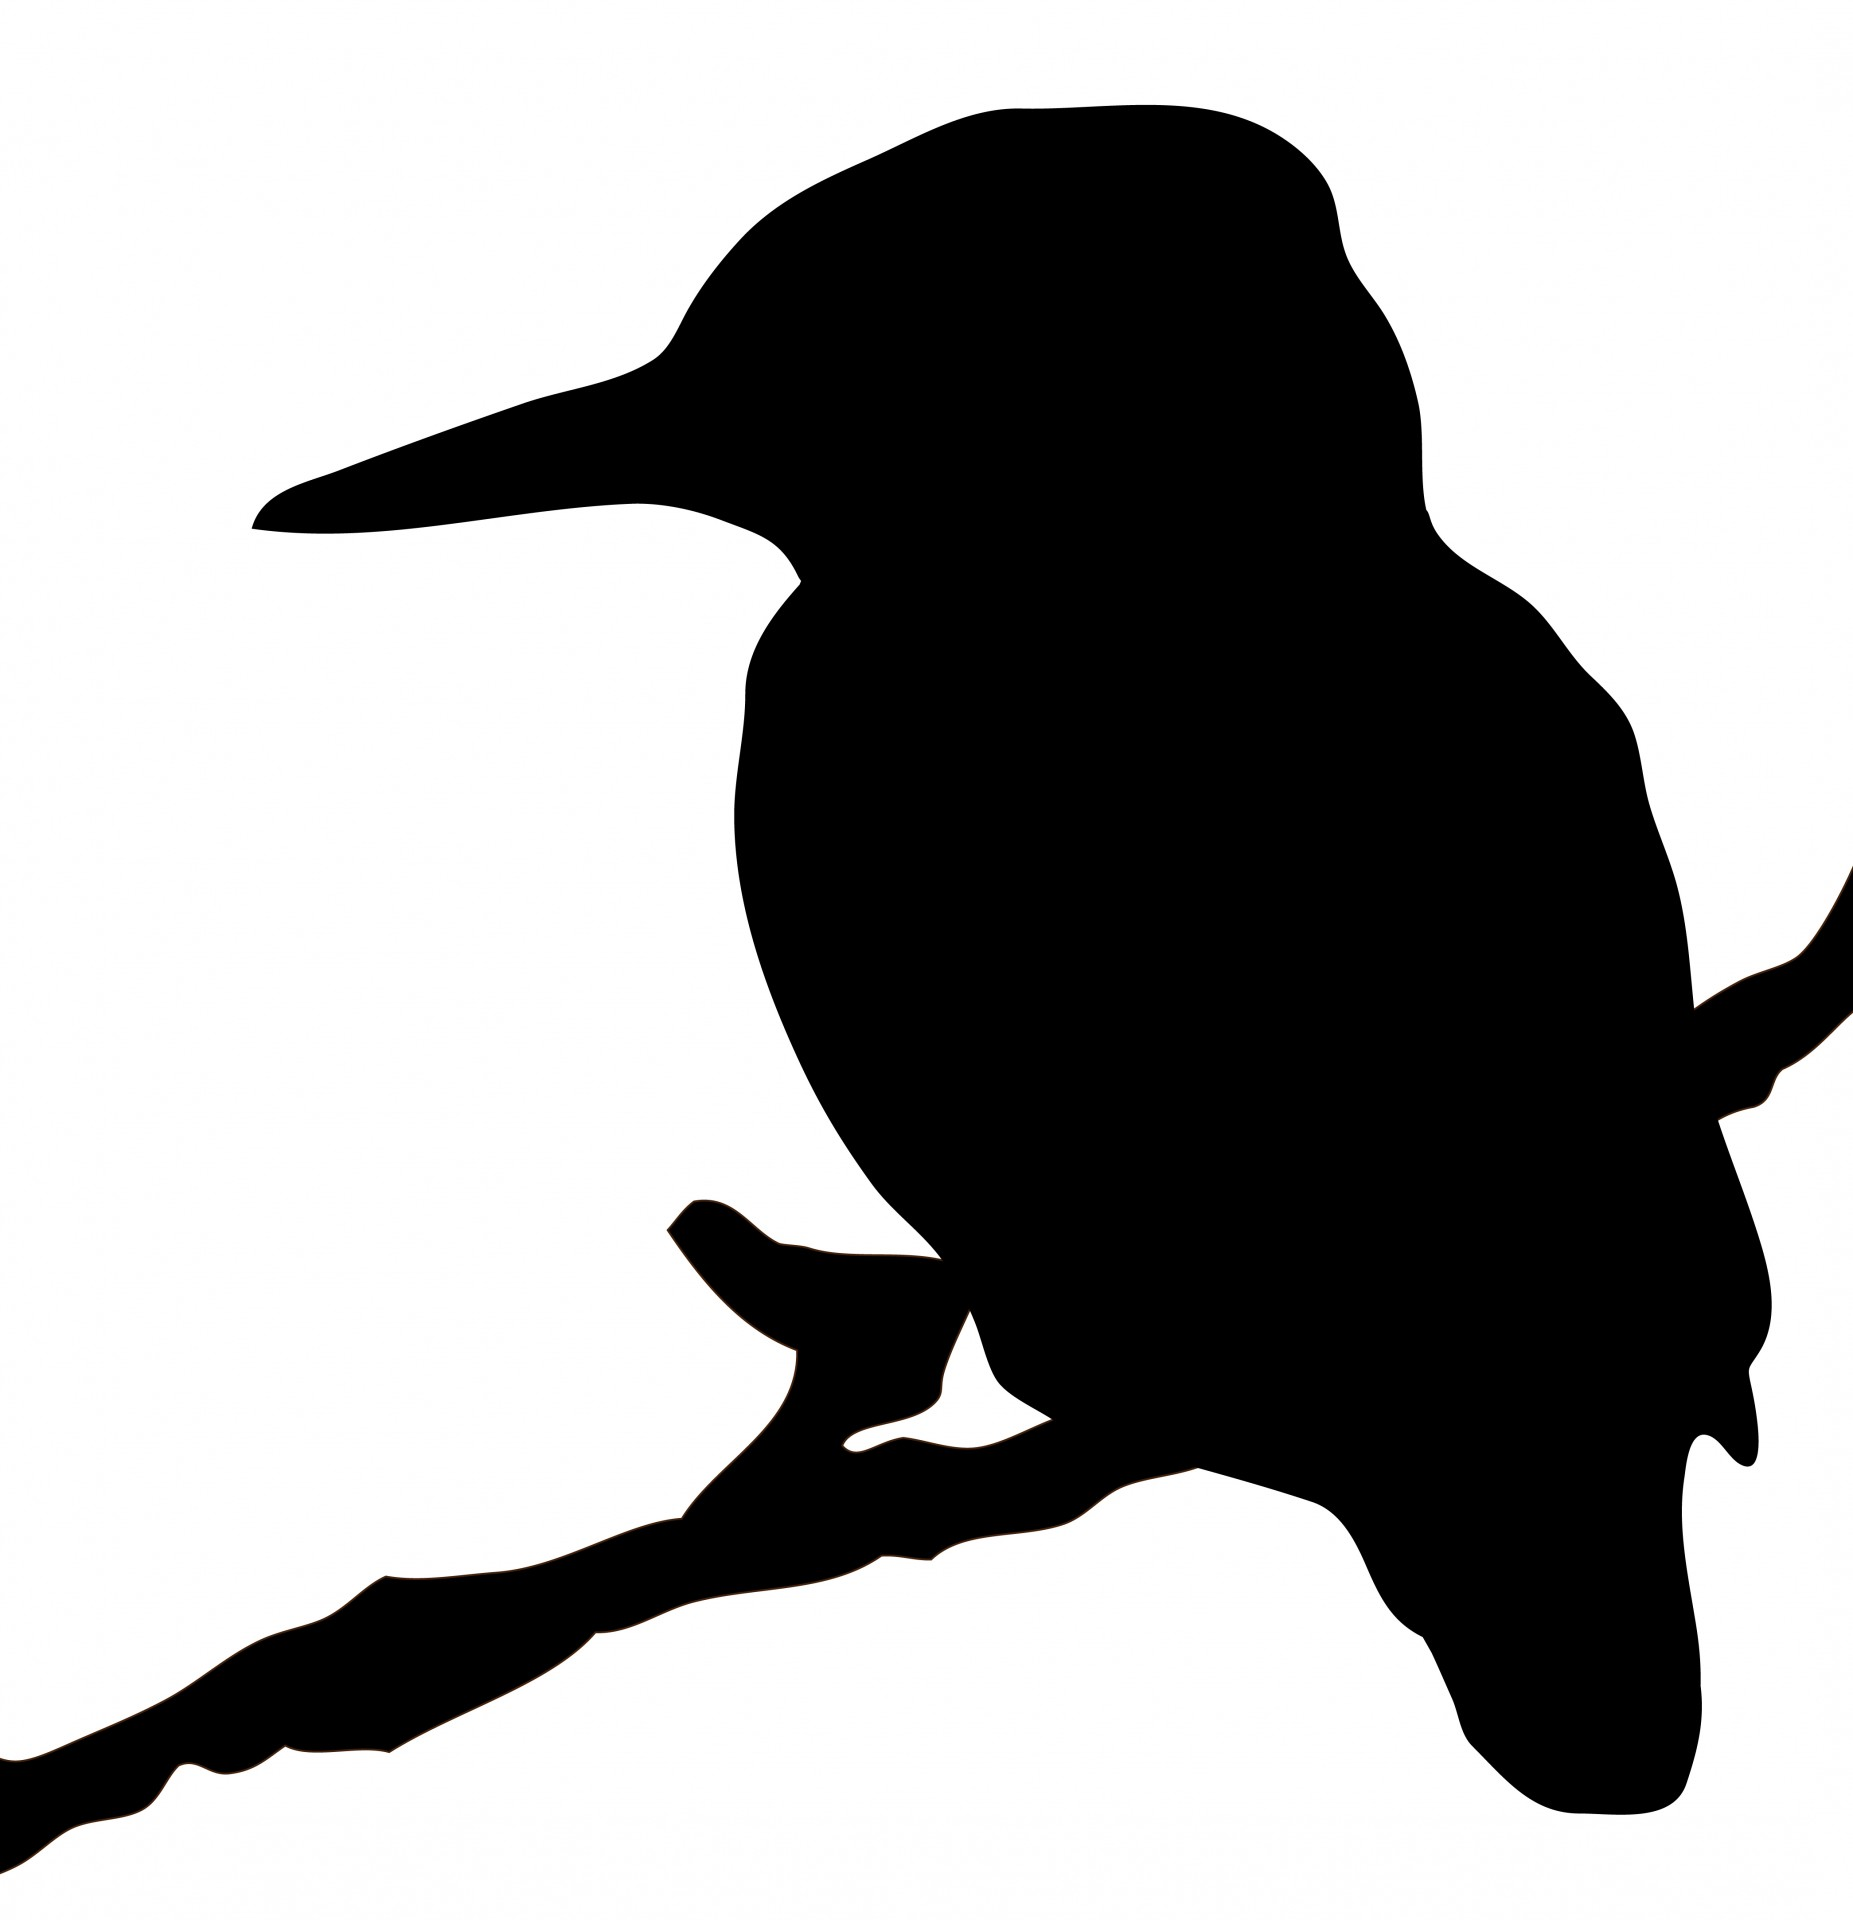 King fisher bird clipart.